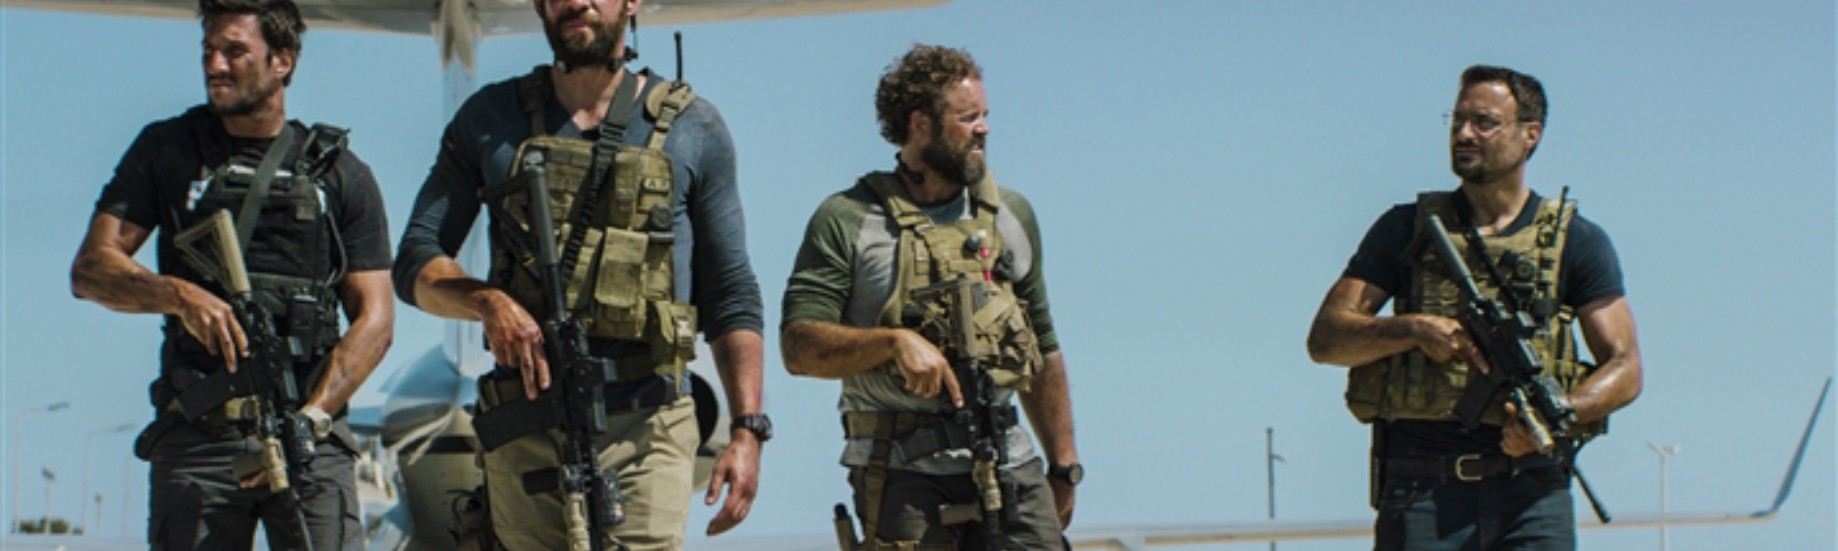 13 hours of benghazi full movie online free